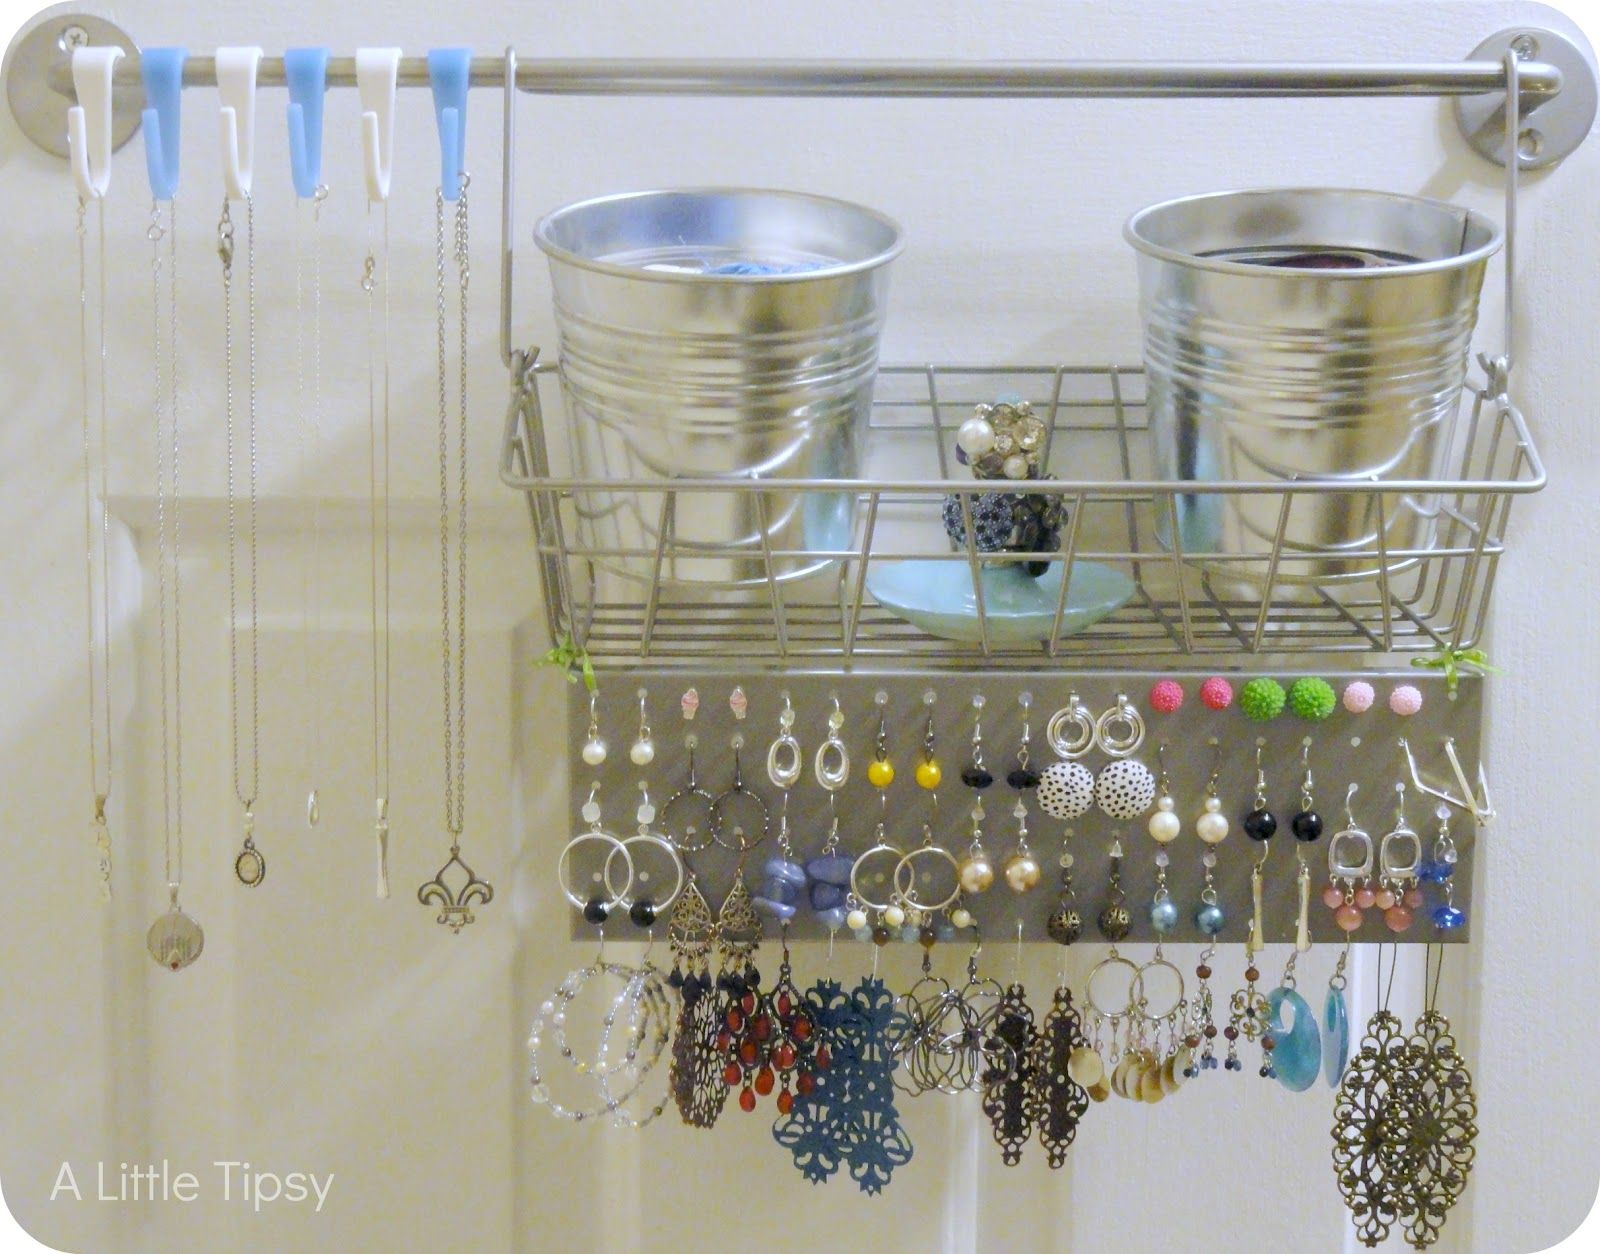 Captivating A Little Tipsy: Organize The Jewelry!